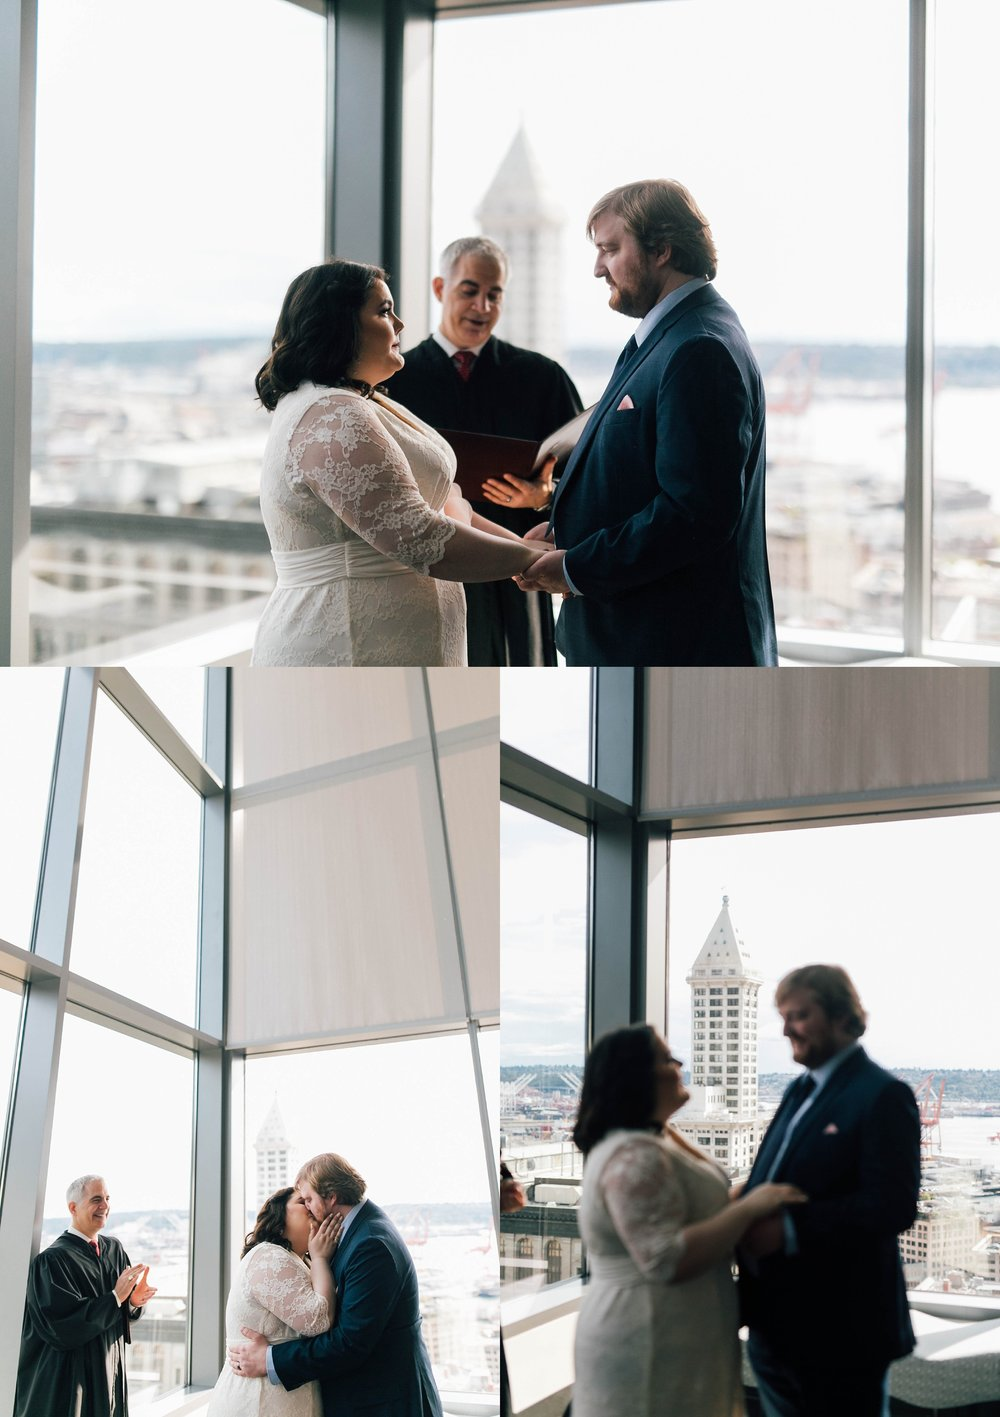 ashley_vos_seattle_Courthouse_ wedding_photographer_0156.jpg